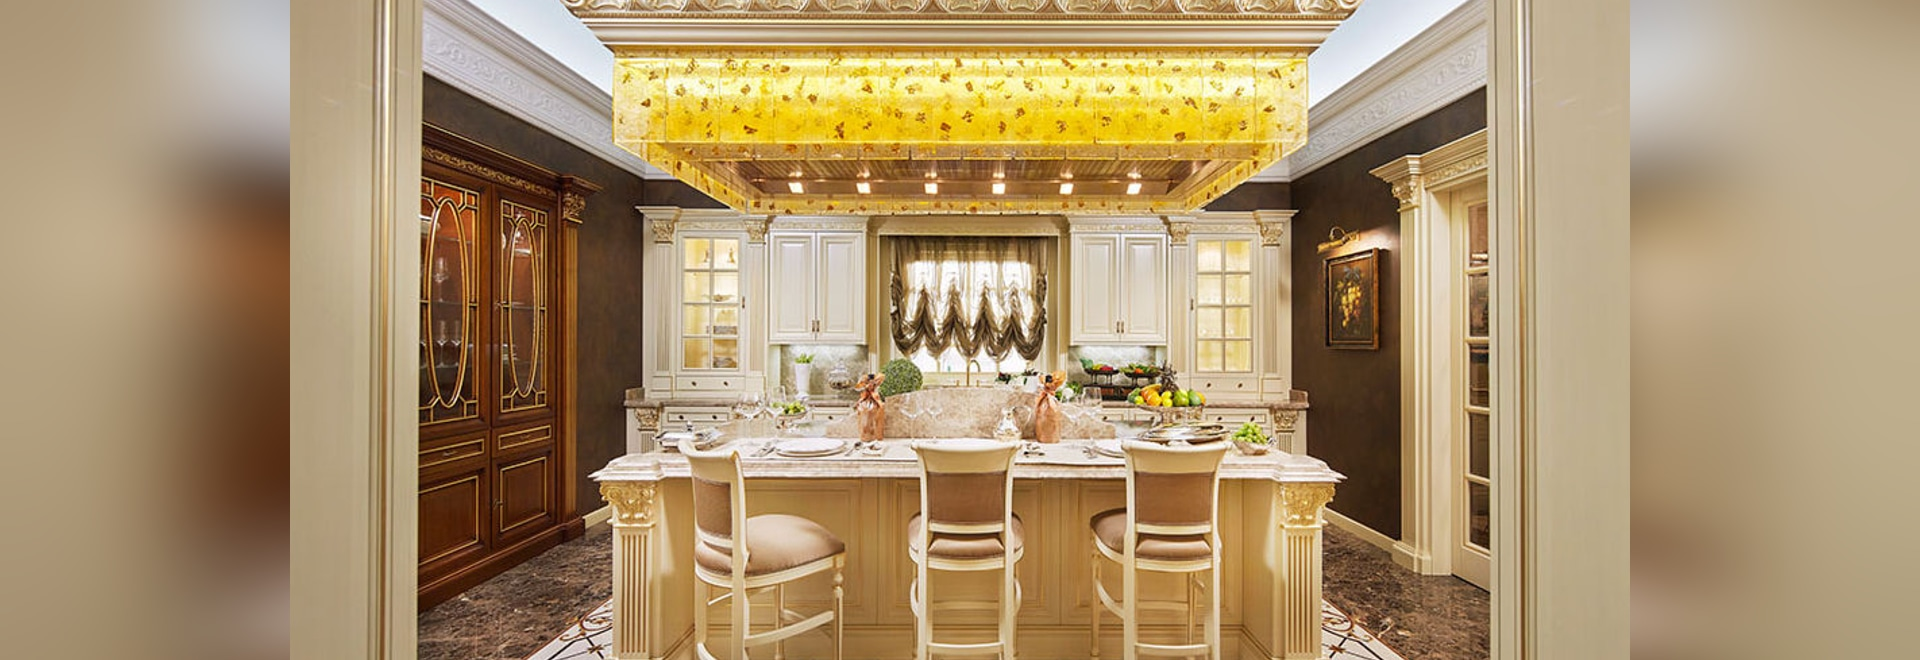 PRINCE traditional kitchen by FAOMA